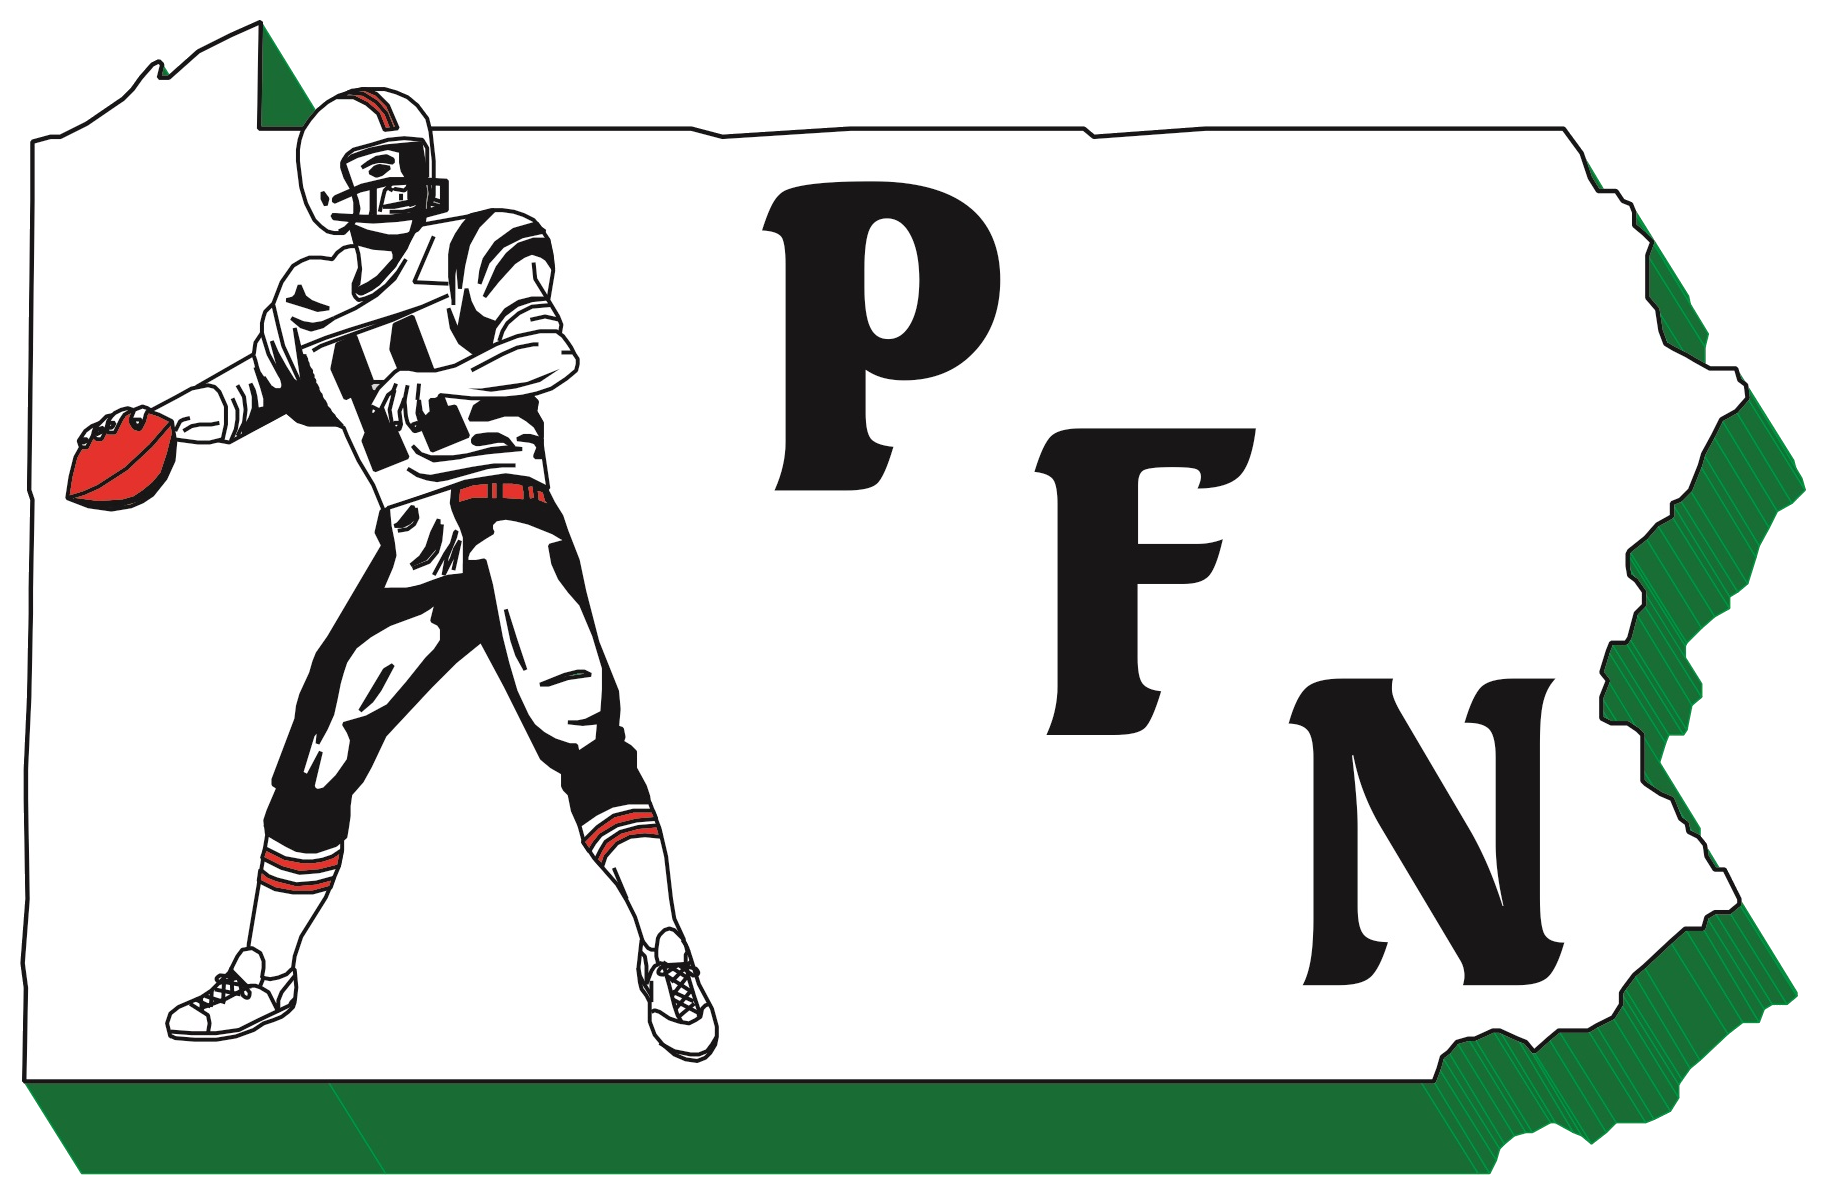 PA Football News - Your #1 Source for Pennsylvania High School Football!